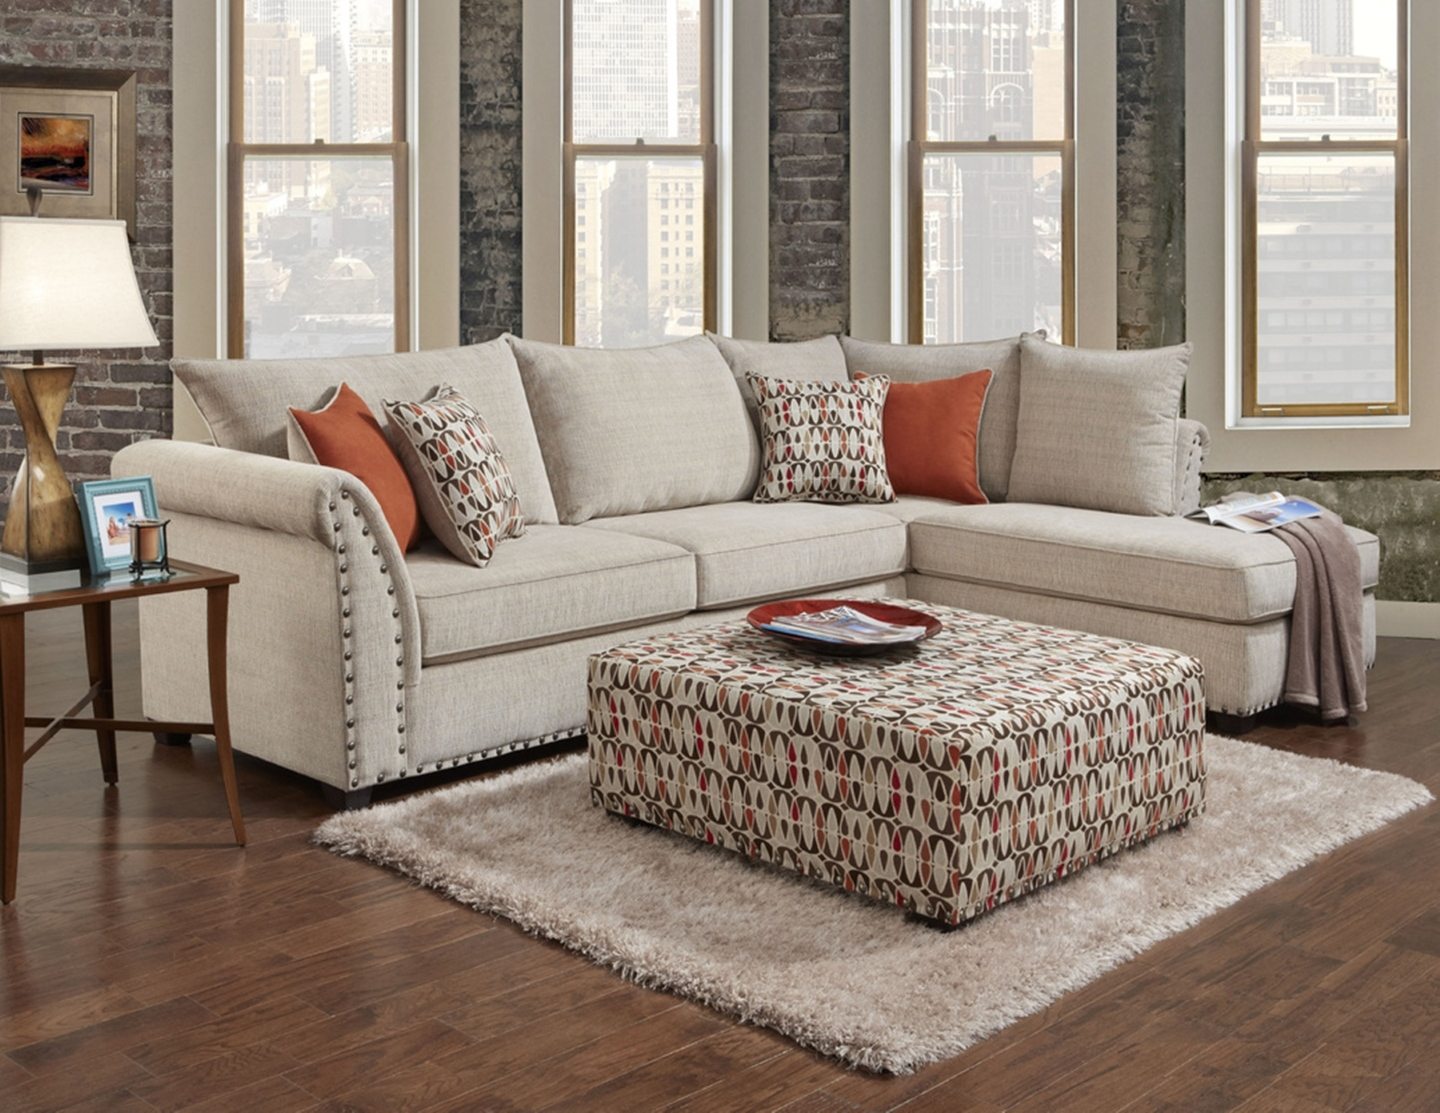 Patton beige sectional 1850 dallas designer furniture for Furniture 4 less dallas tx